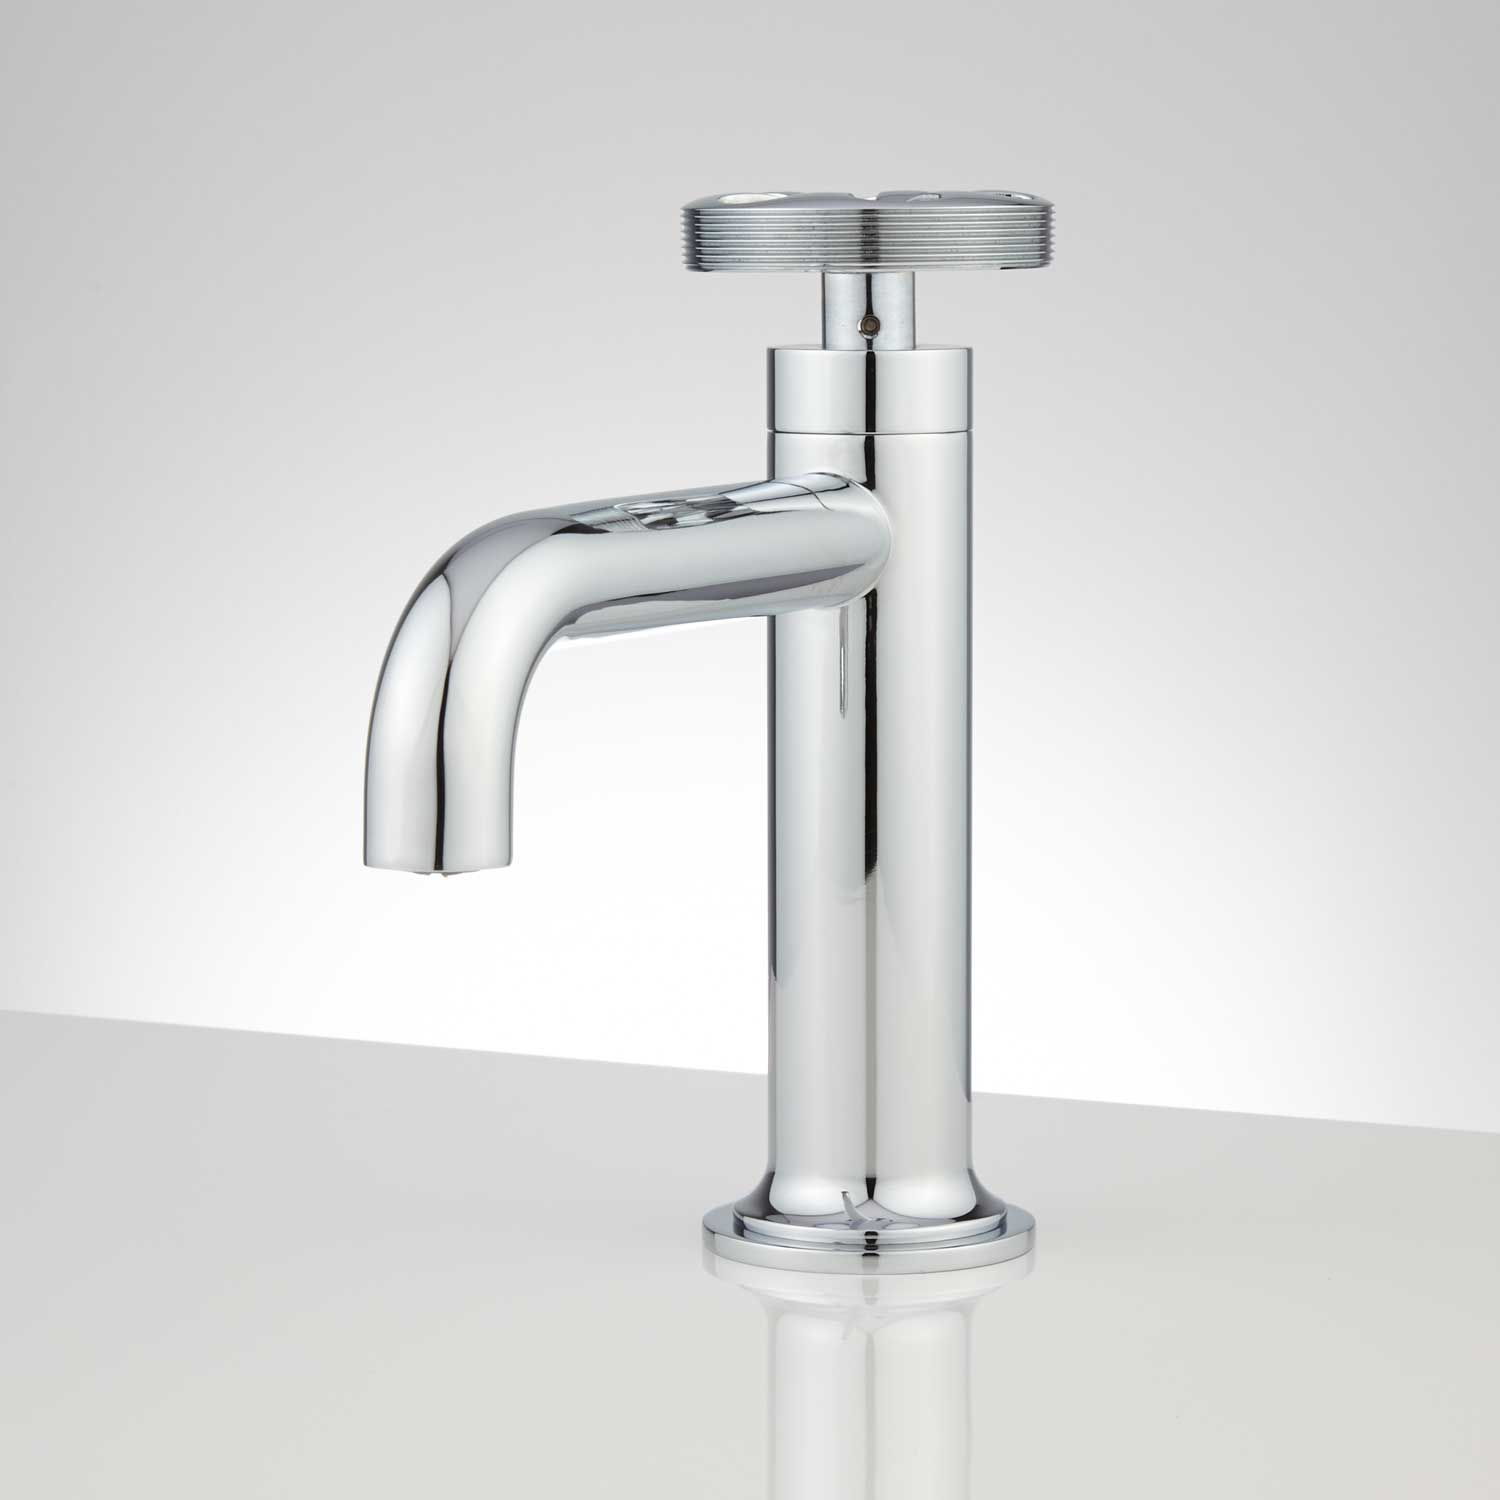 Edison Single Hole Brass Bathroom Faucet With PopUp Drain No - Chrome and brass bathroom fixtures